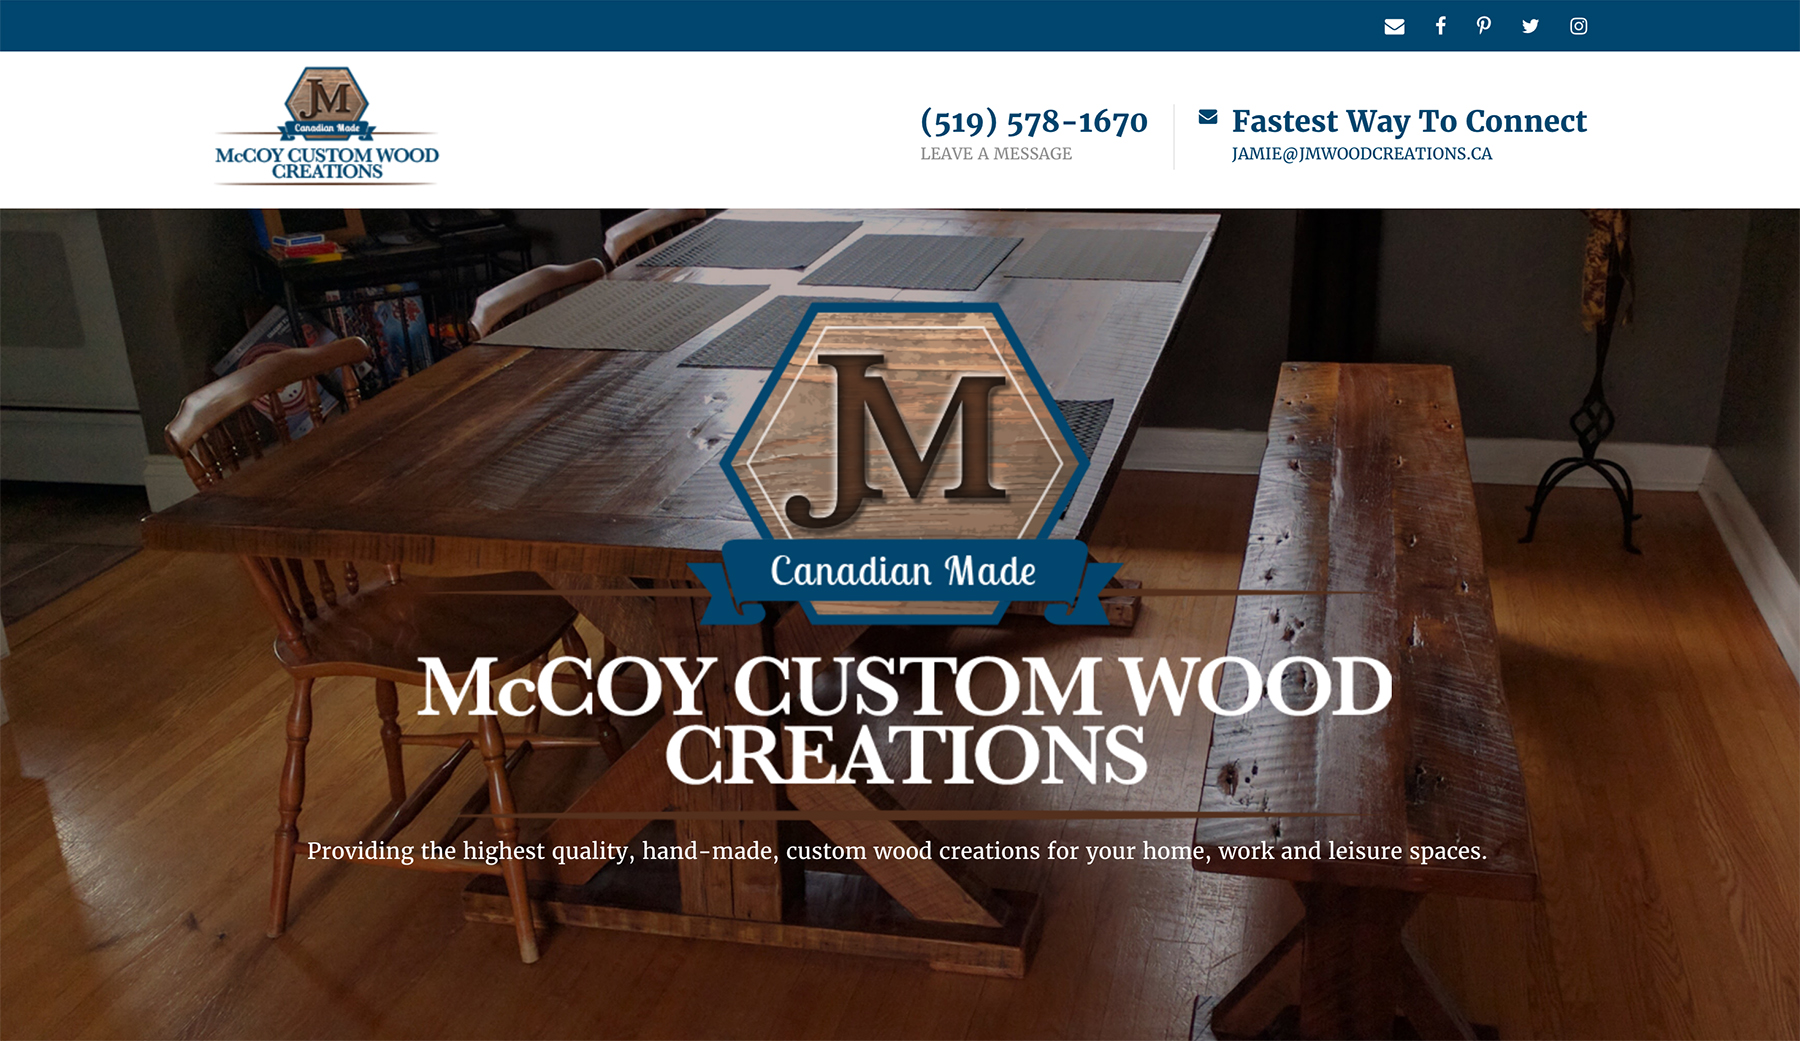 McCoy Website Screen Shot